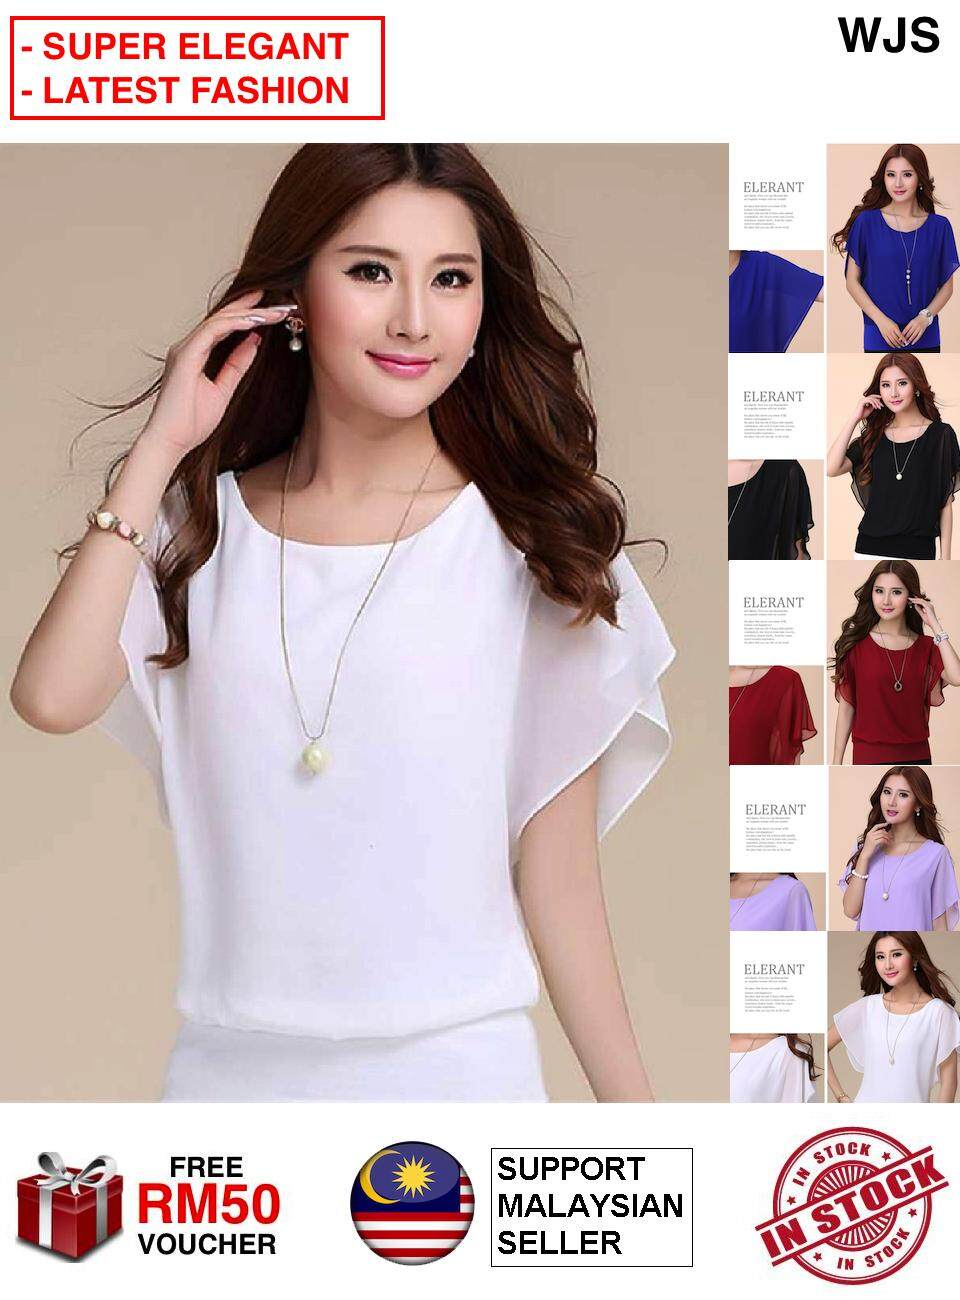 (NICE & SOFT CHIFFON) WJS Elegant Plus Size Korean Style Loose Short-sleeved Chiffon Shirt Summer Wear for Women New Style Large Size Slim Fit Slimming Base Blouse Tops MULTICOLOR UP TO 5XL [FREE RM 50 VOUCHER]